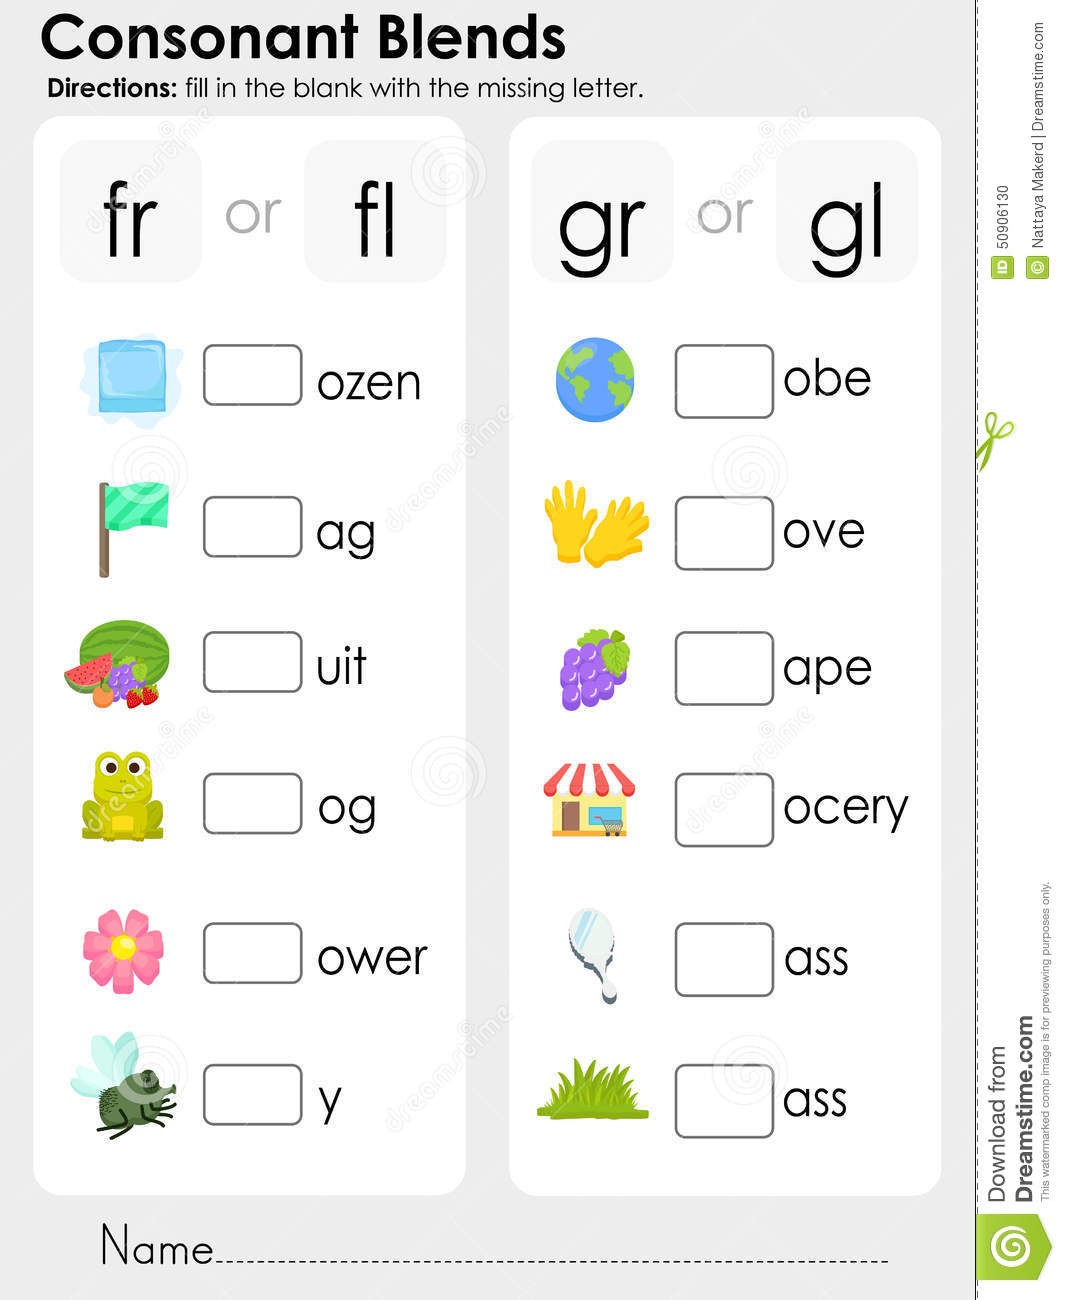 Worksheet Consonant Blends Worksheets consonant blends missing letter worksheet for education stock education